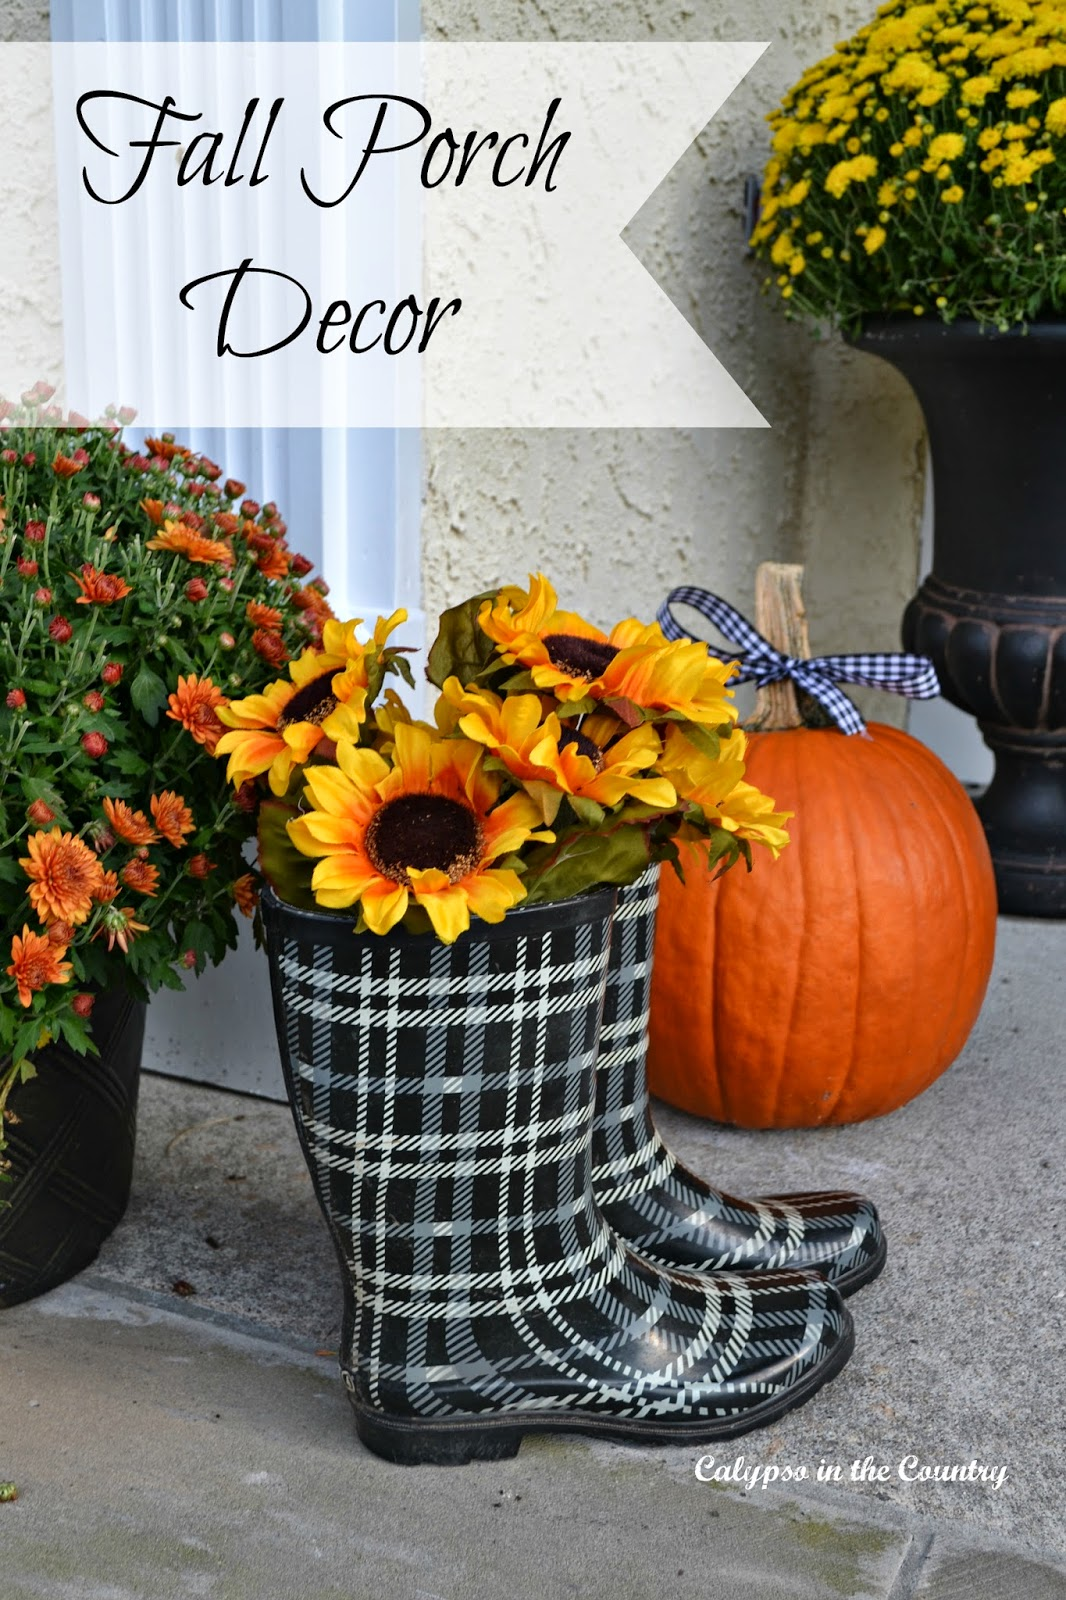 Colorful Fall Porch Decor